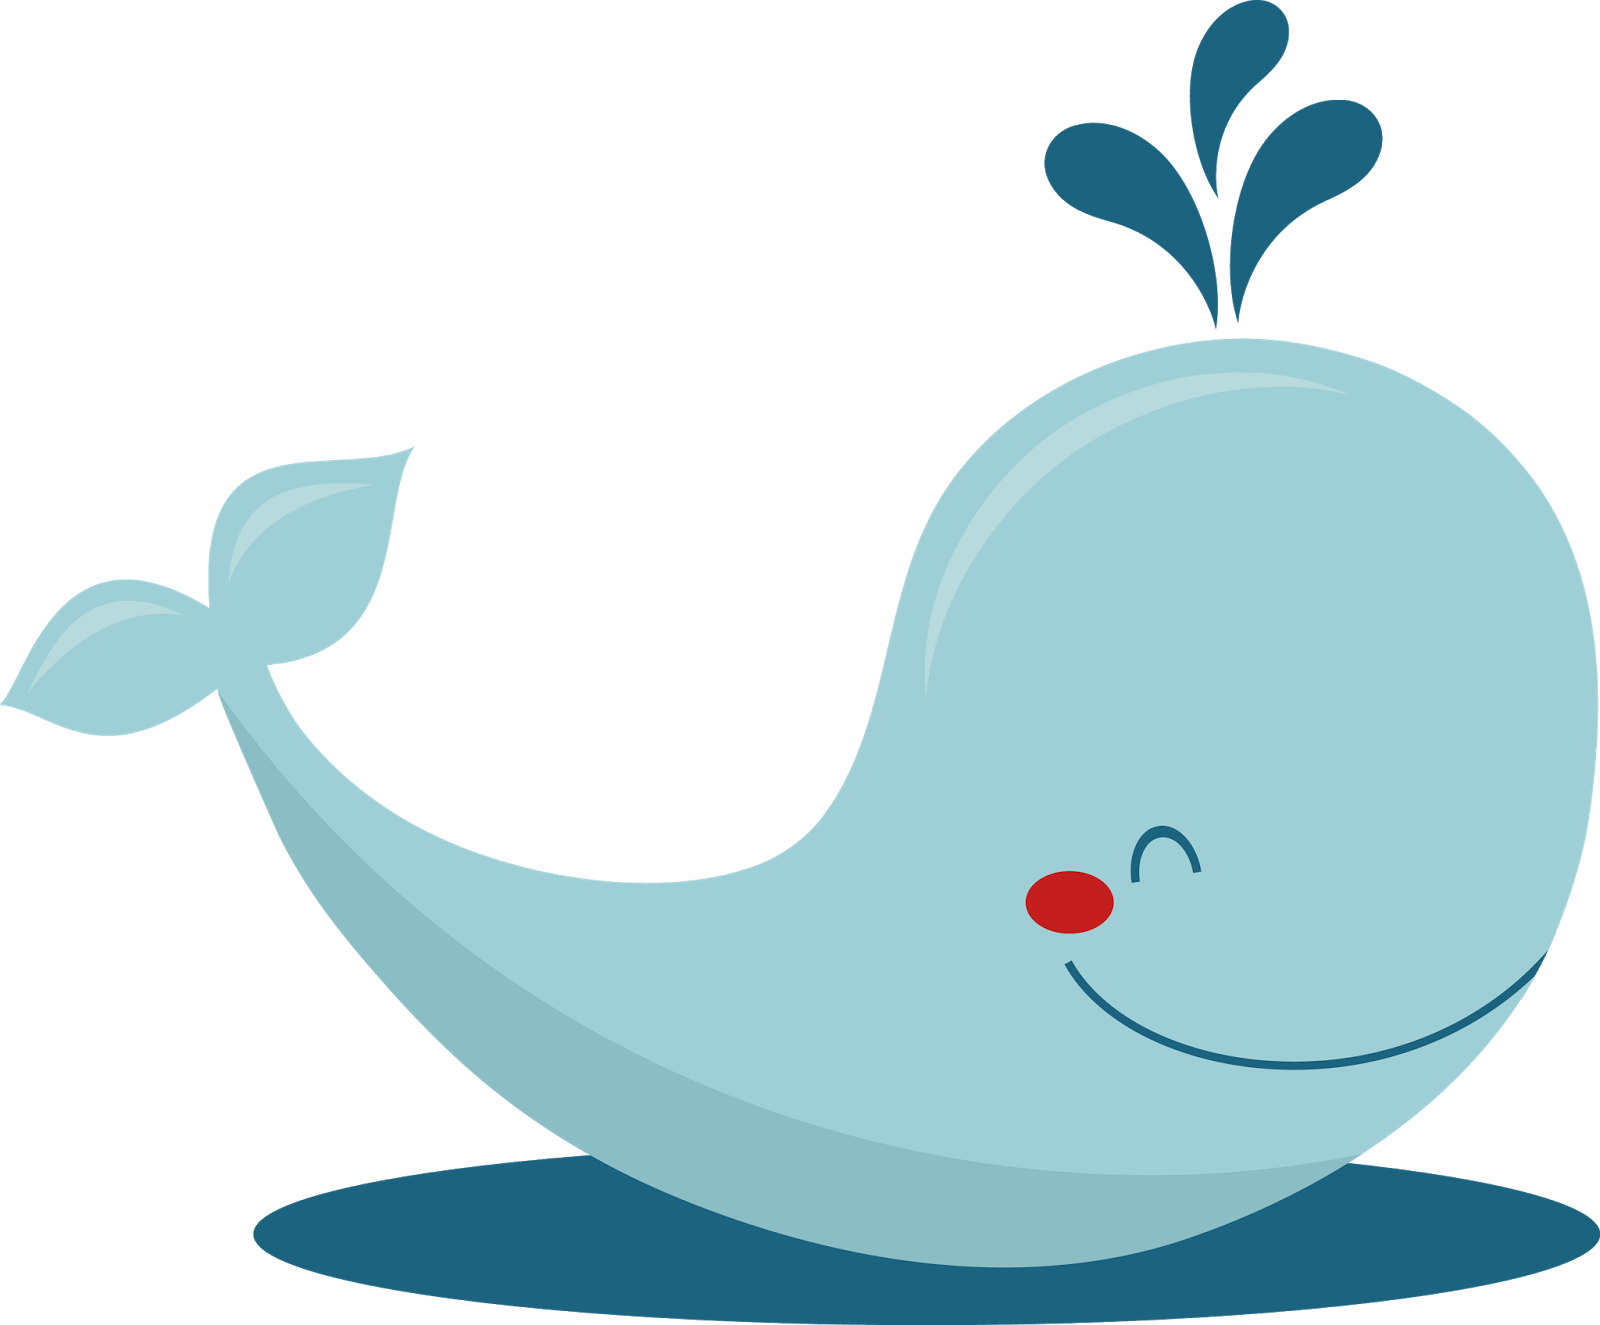 Drawn whale baby whale Images images images free clip